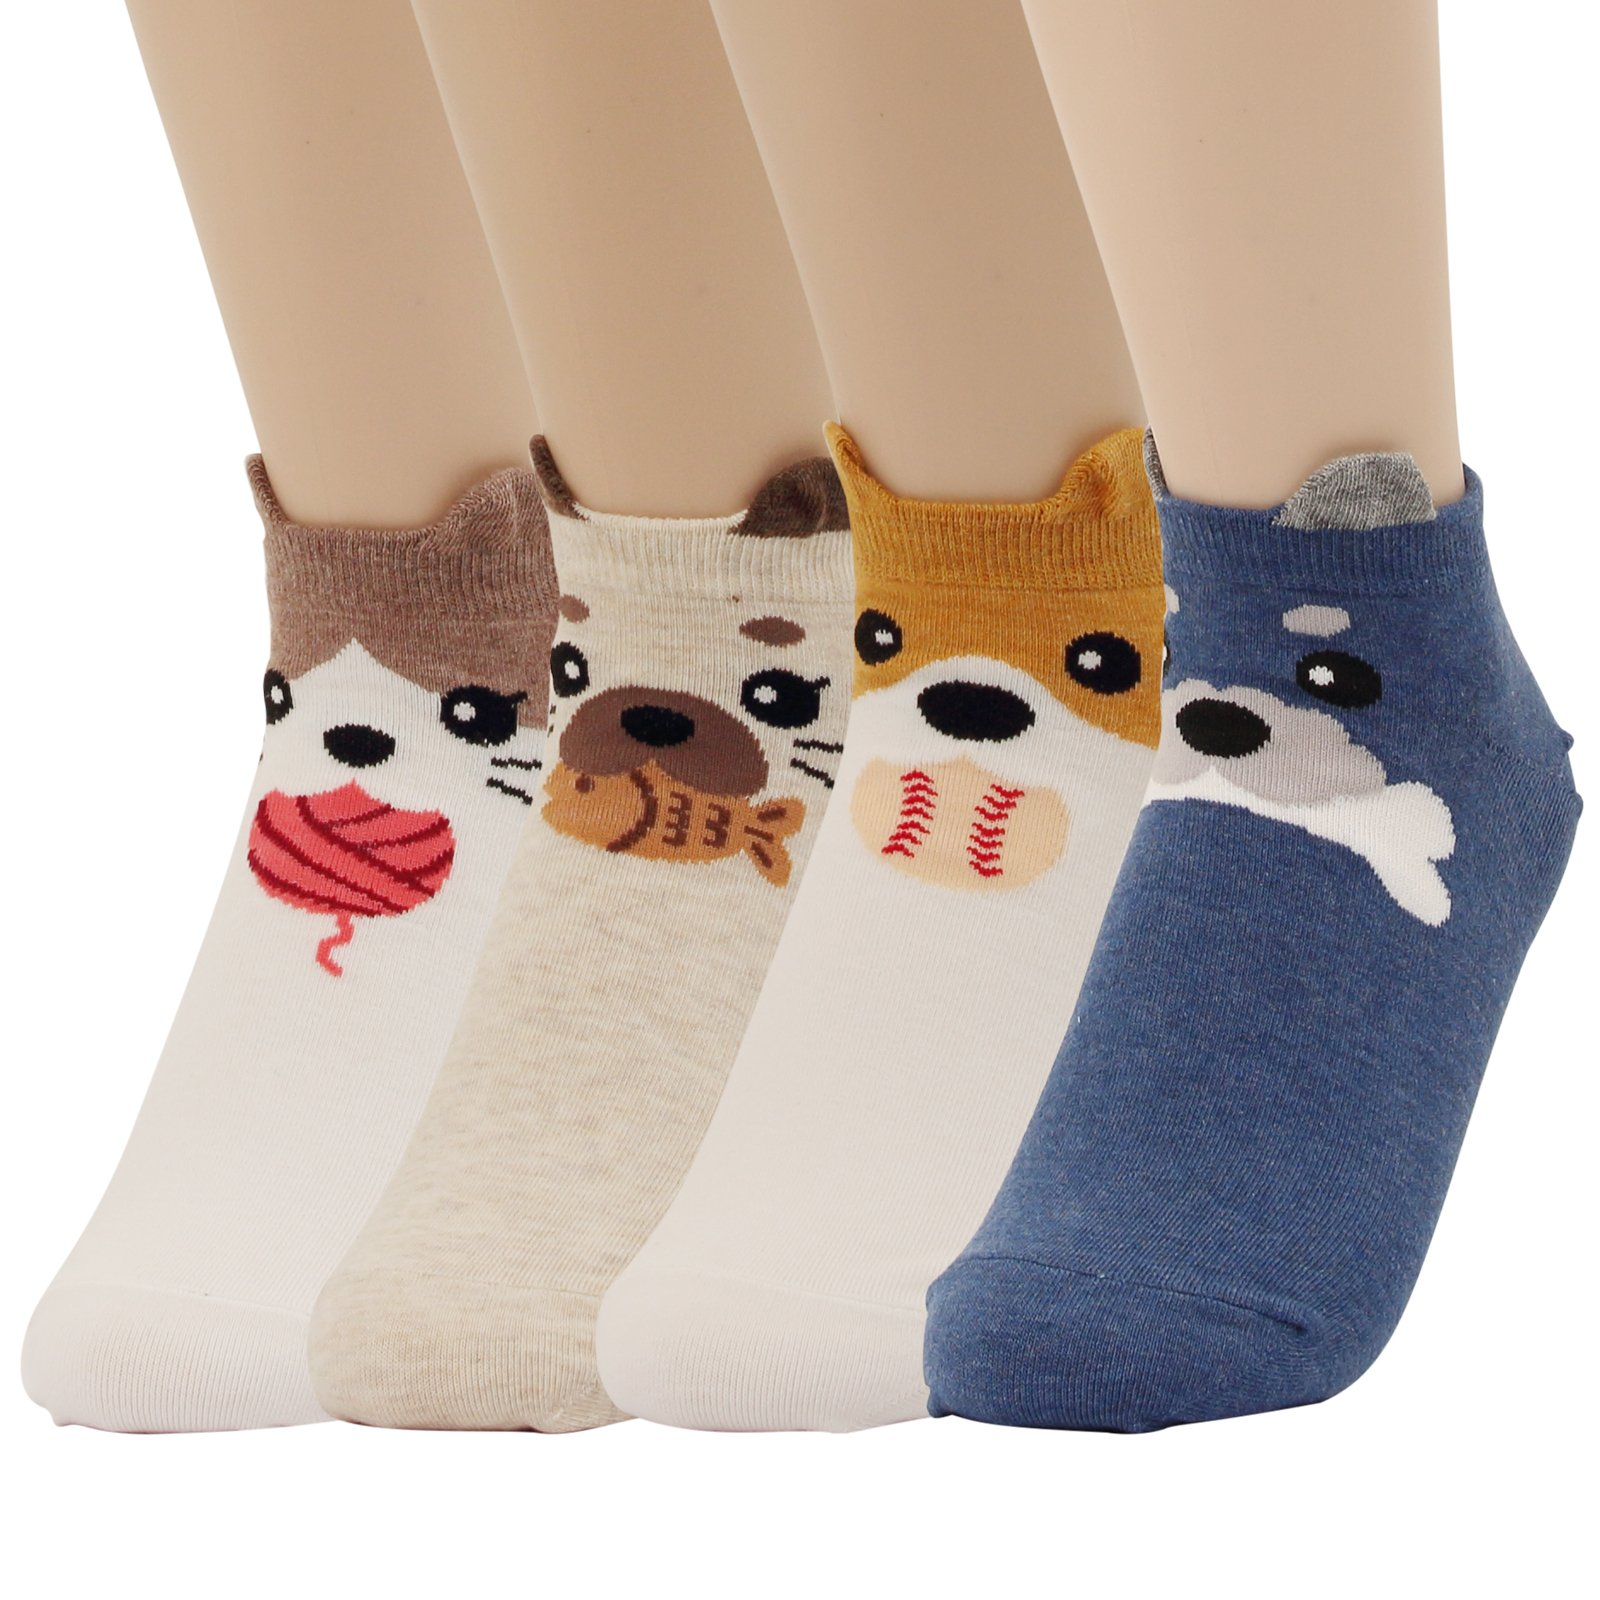 Cat Animal Low Cut Socks For Women Girl Cool Puppy Fun Crazy Novelty Design Sneakers Crew Ankle (4pairs - Ang)